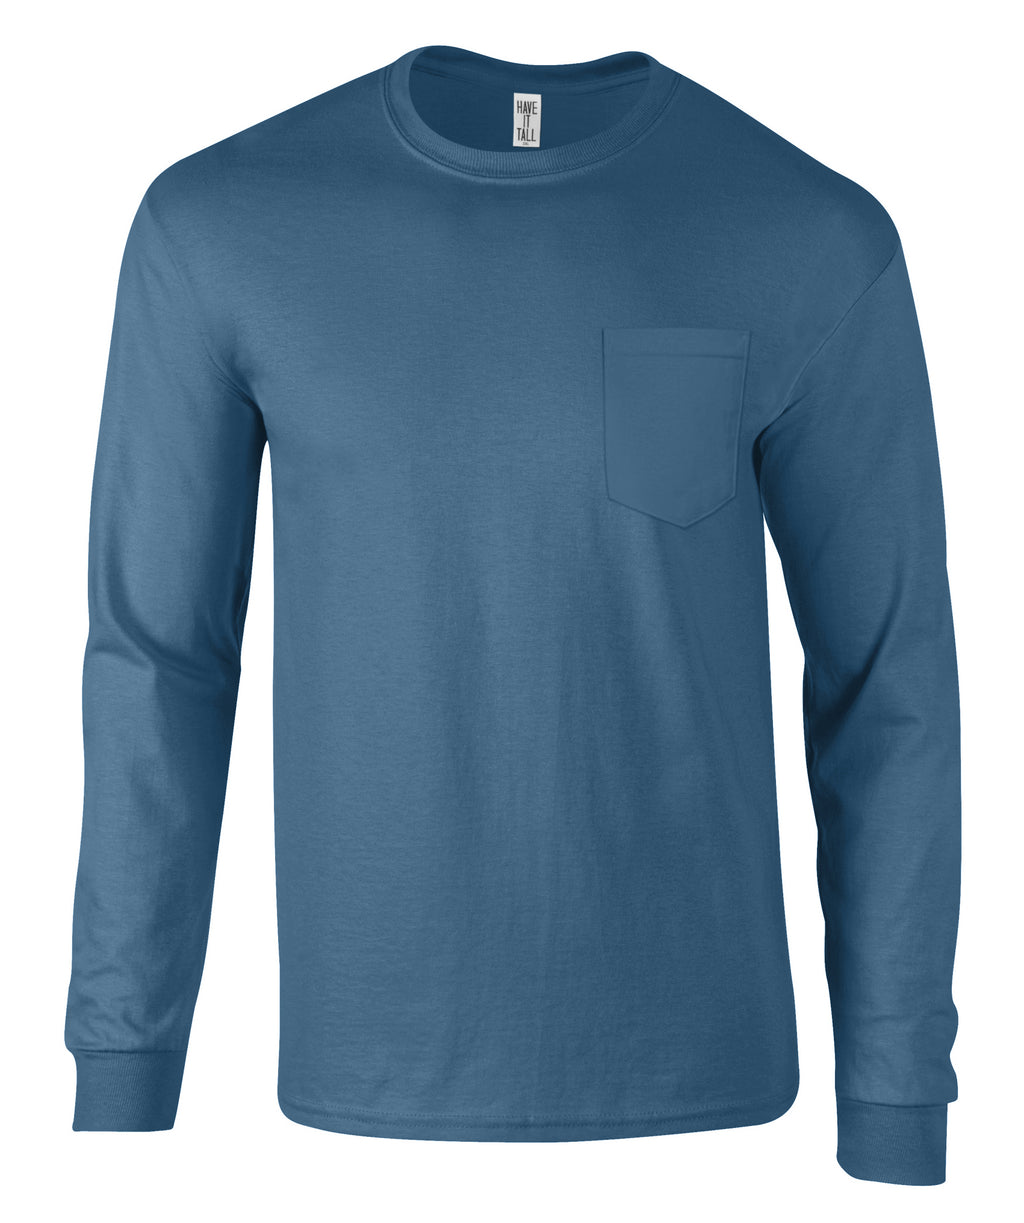 Have It Tall Premium Cotton Long Sleeve T Shirt With Pocket